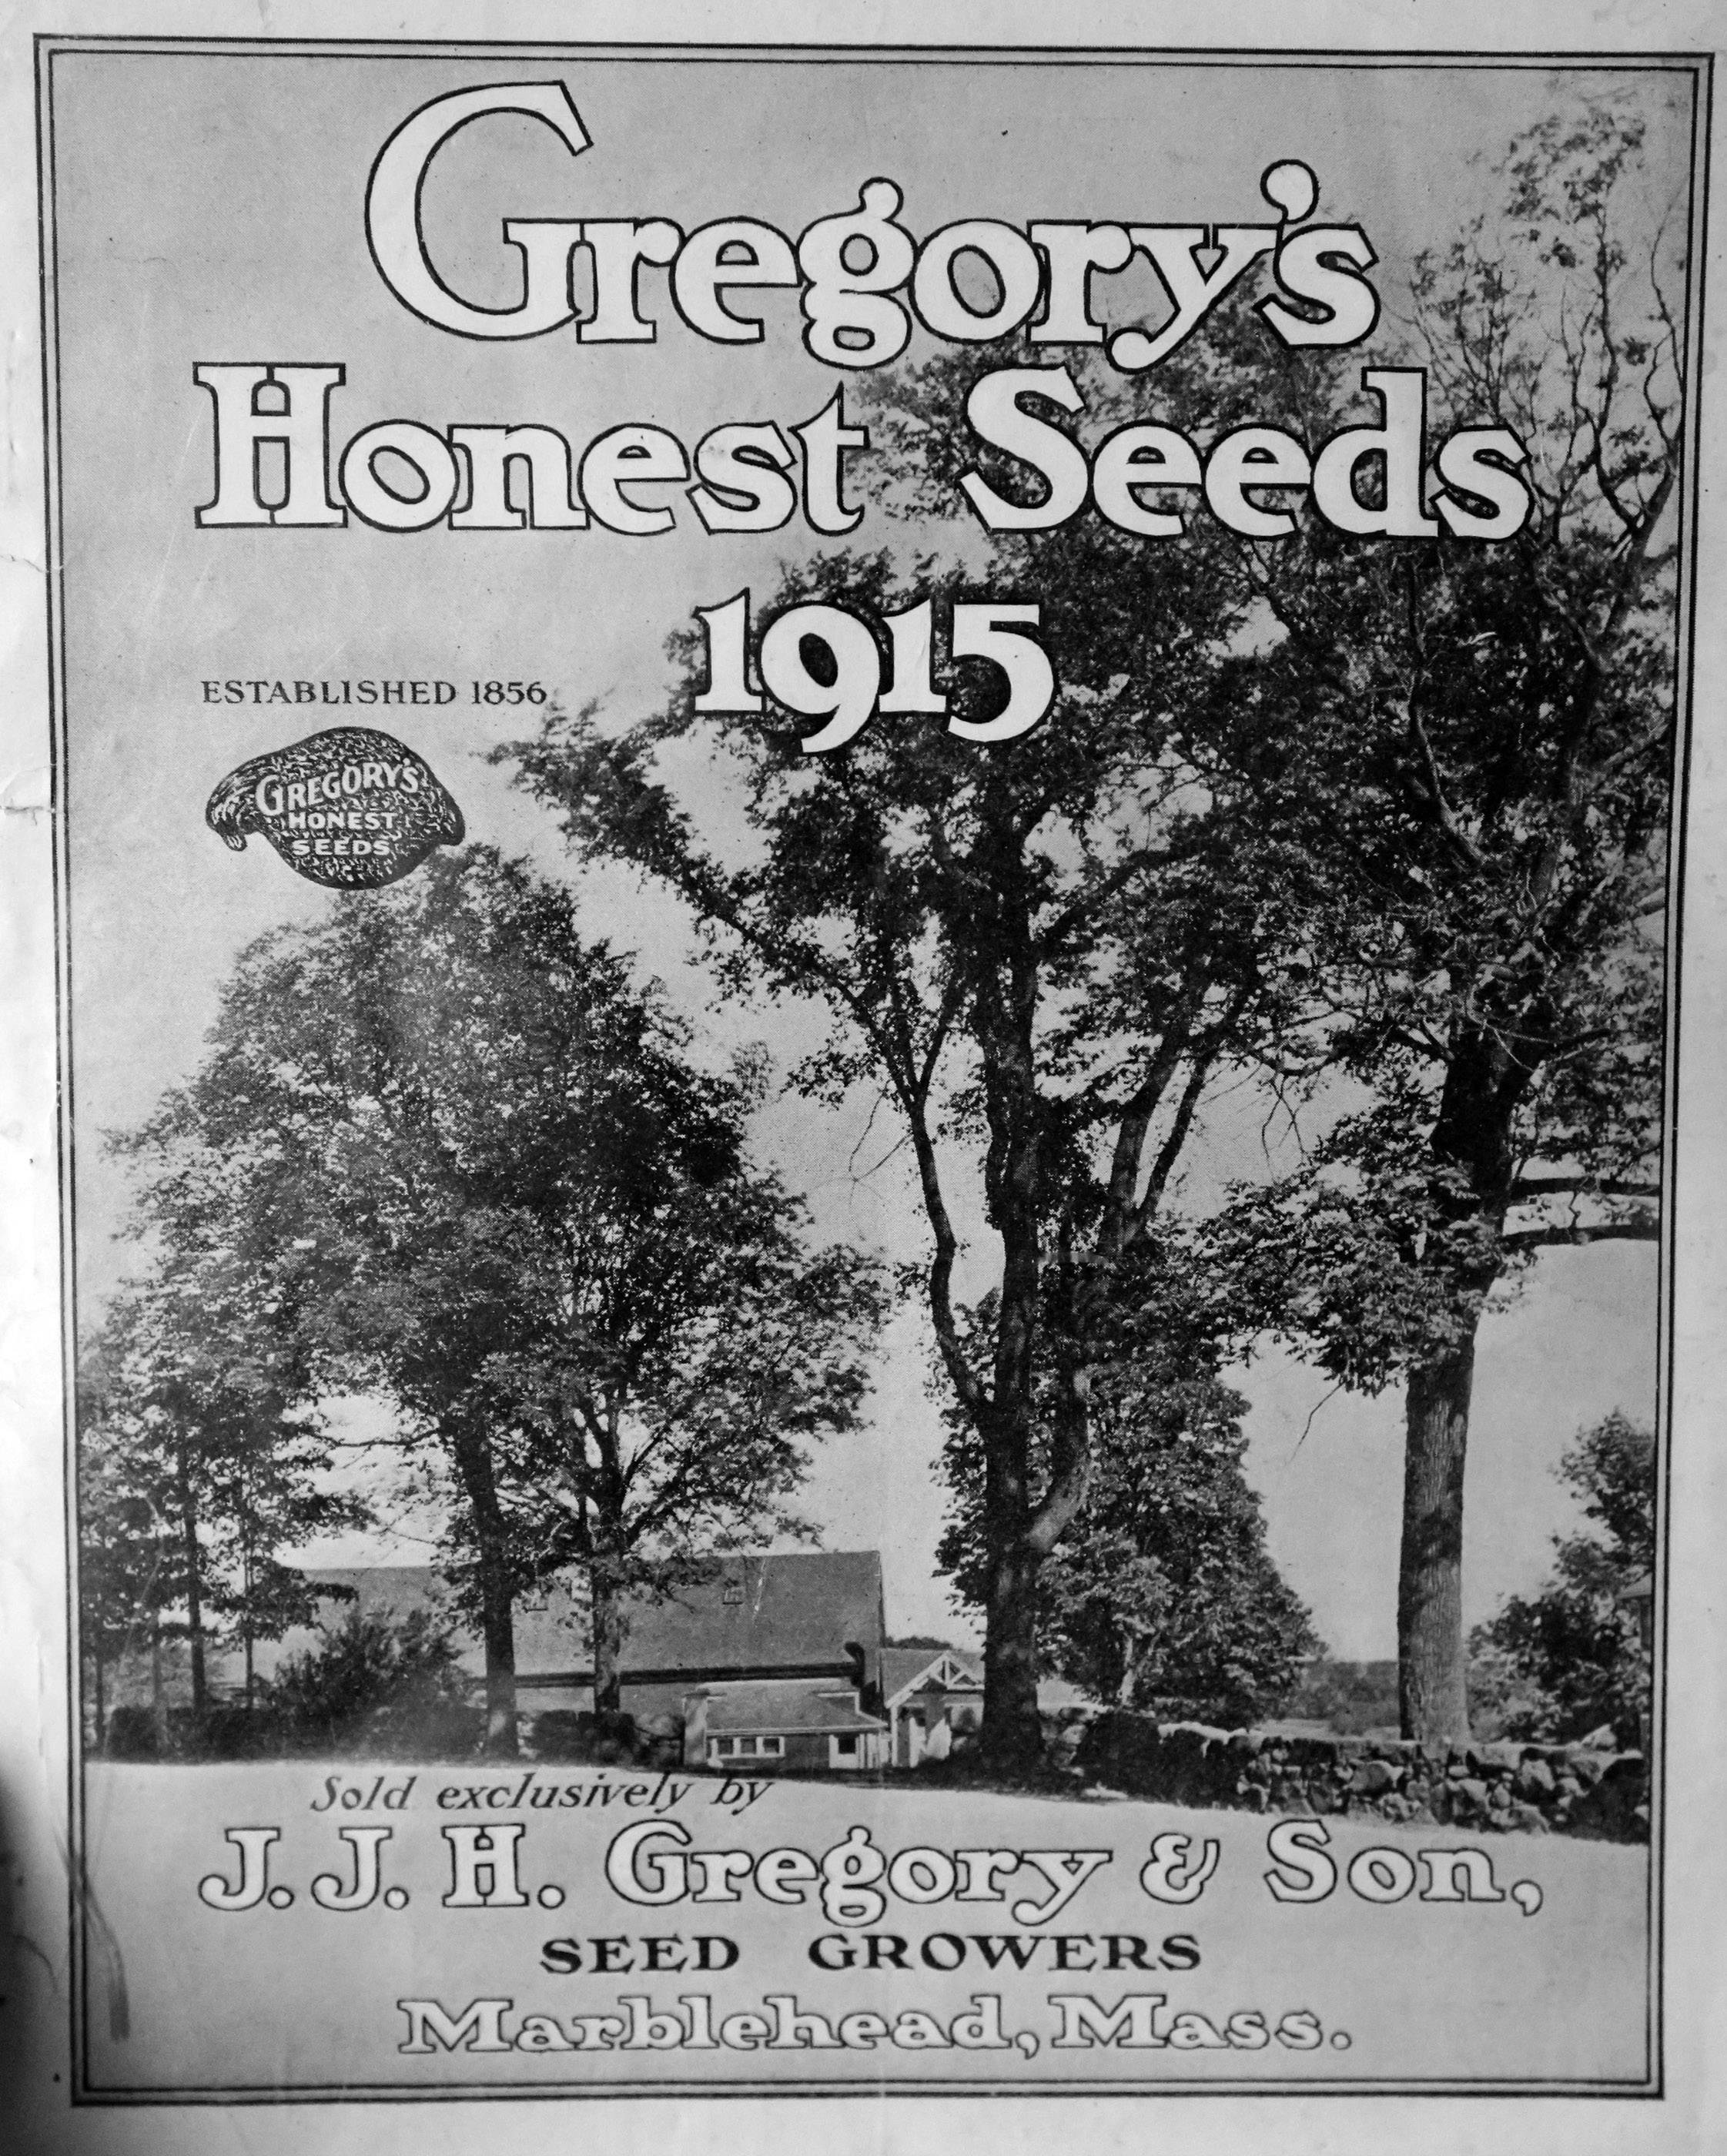 After James J.H. Gregory died in 1910, Gregory's Honest Seeds continued in business, as this 1915 catalog shows.